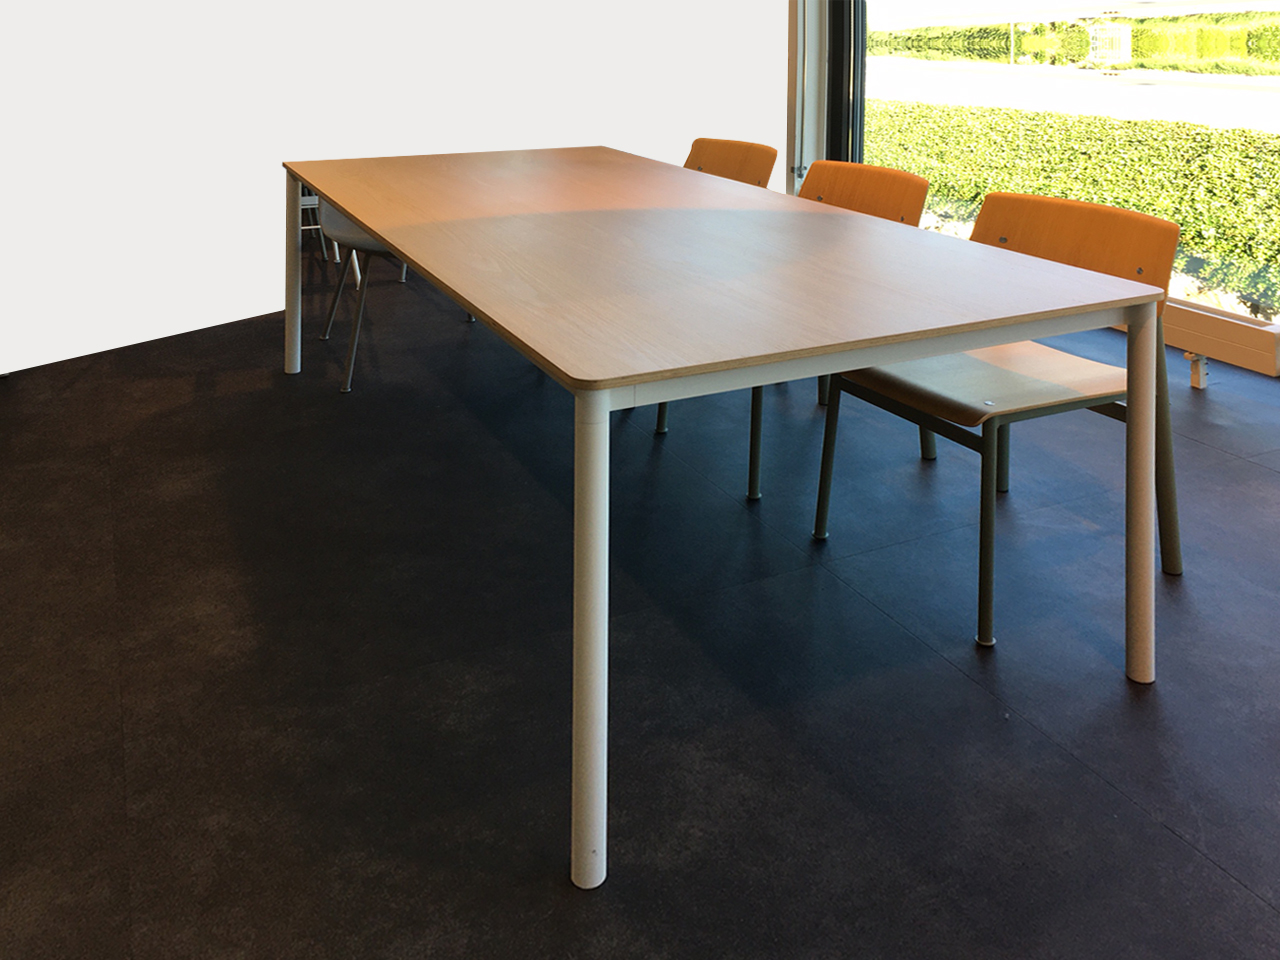 Basic Table - Tables